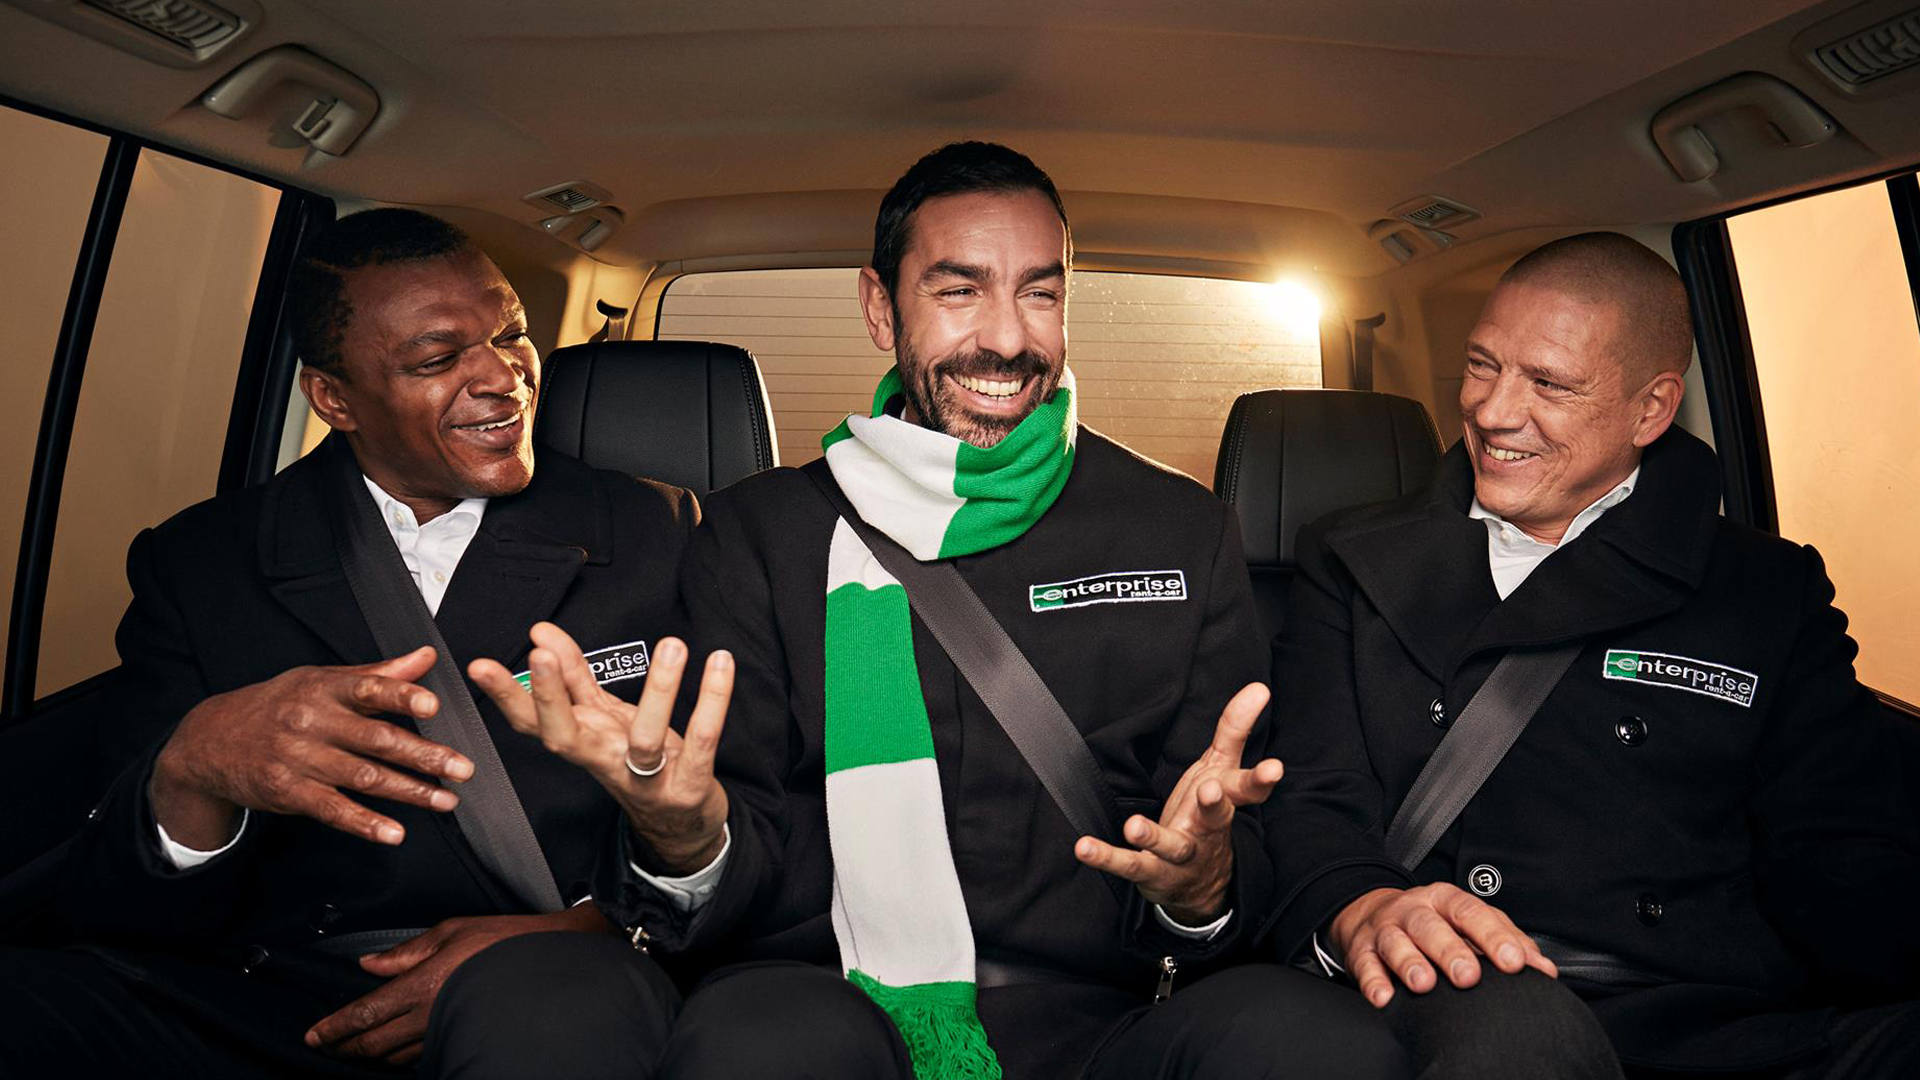 Marcel Desailly - Robert Pires -  Enterprise - Commercial image